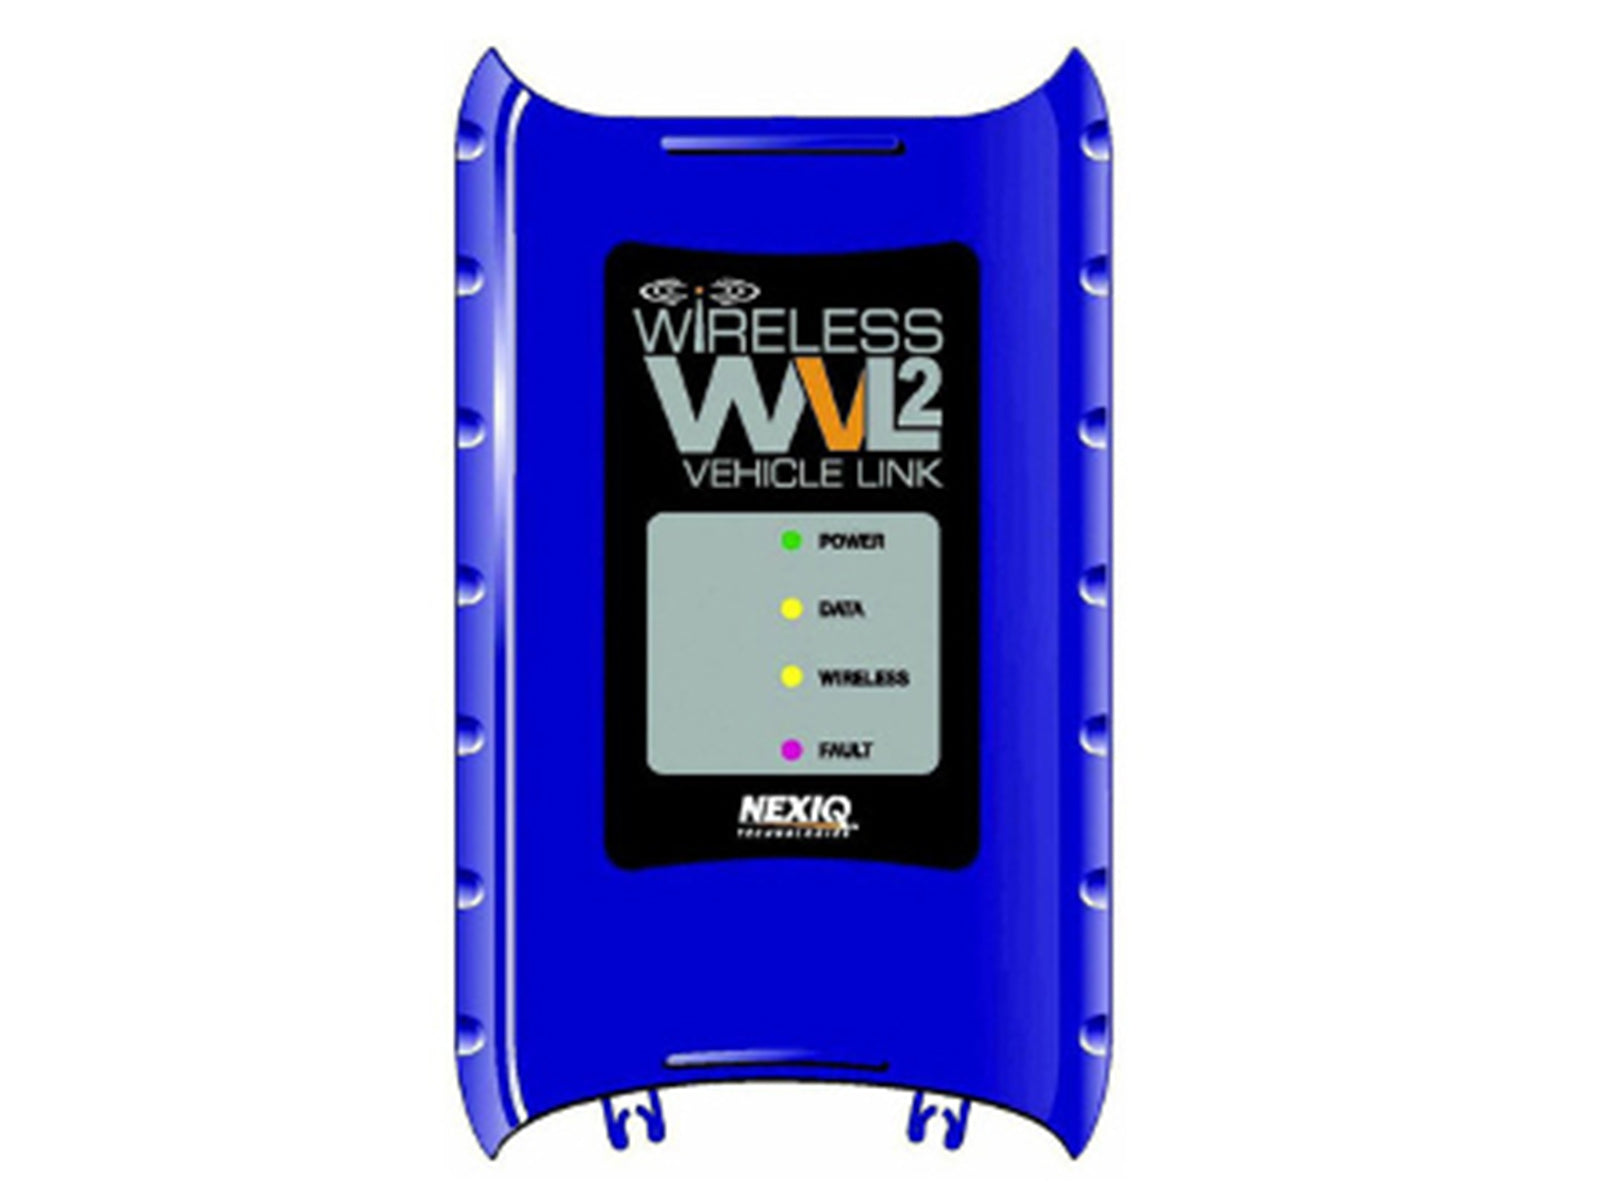 Nexiq Wireless Vehicle Link 2 (WVL2) Adapter